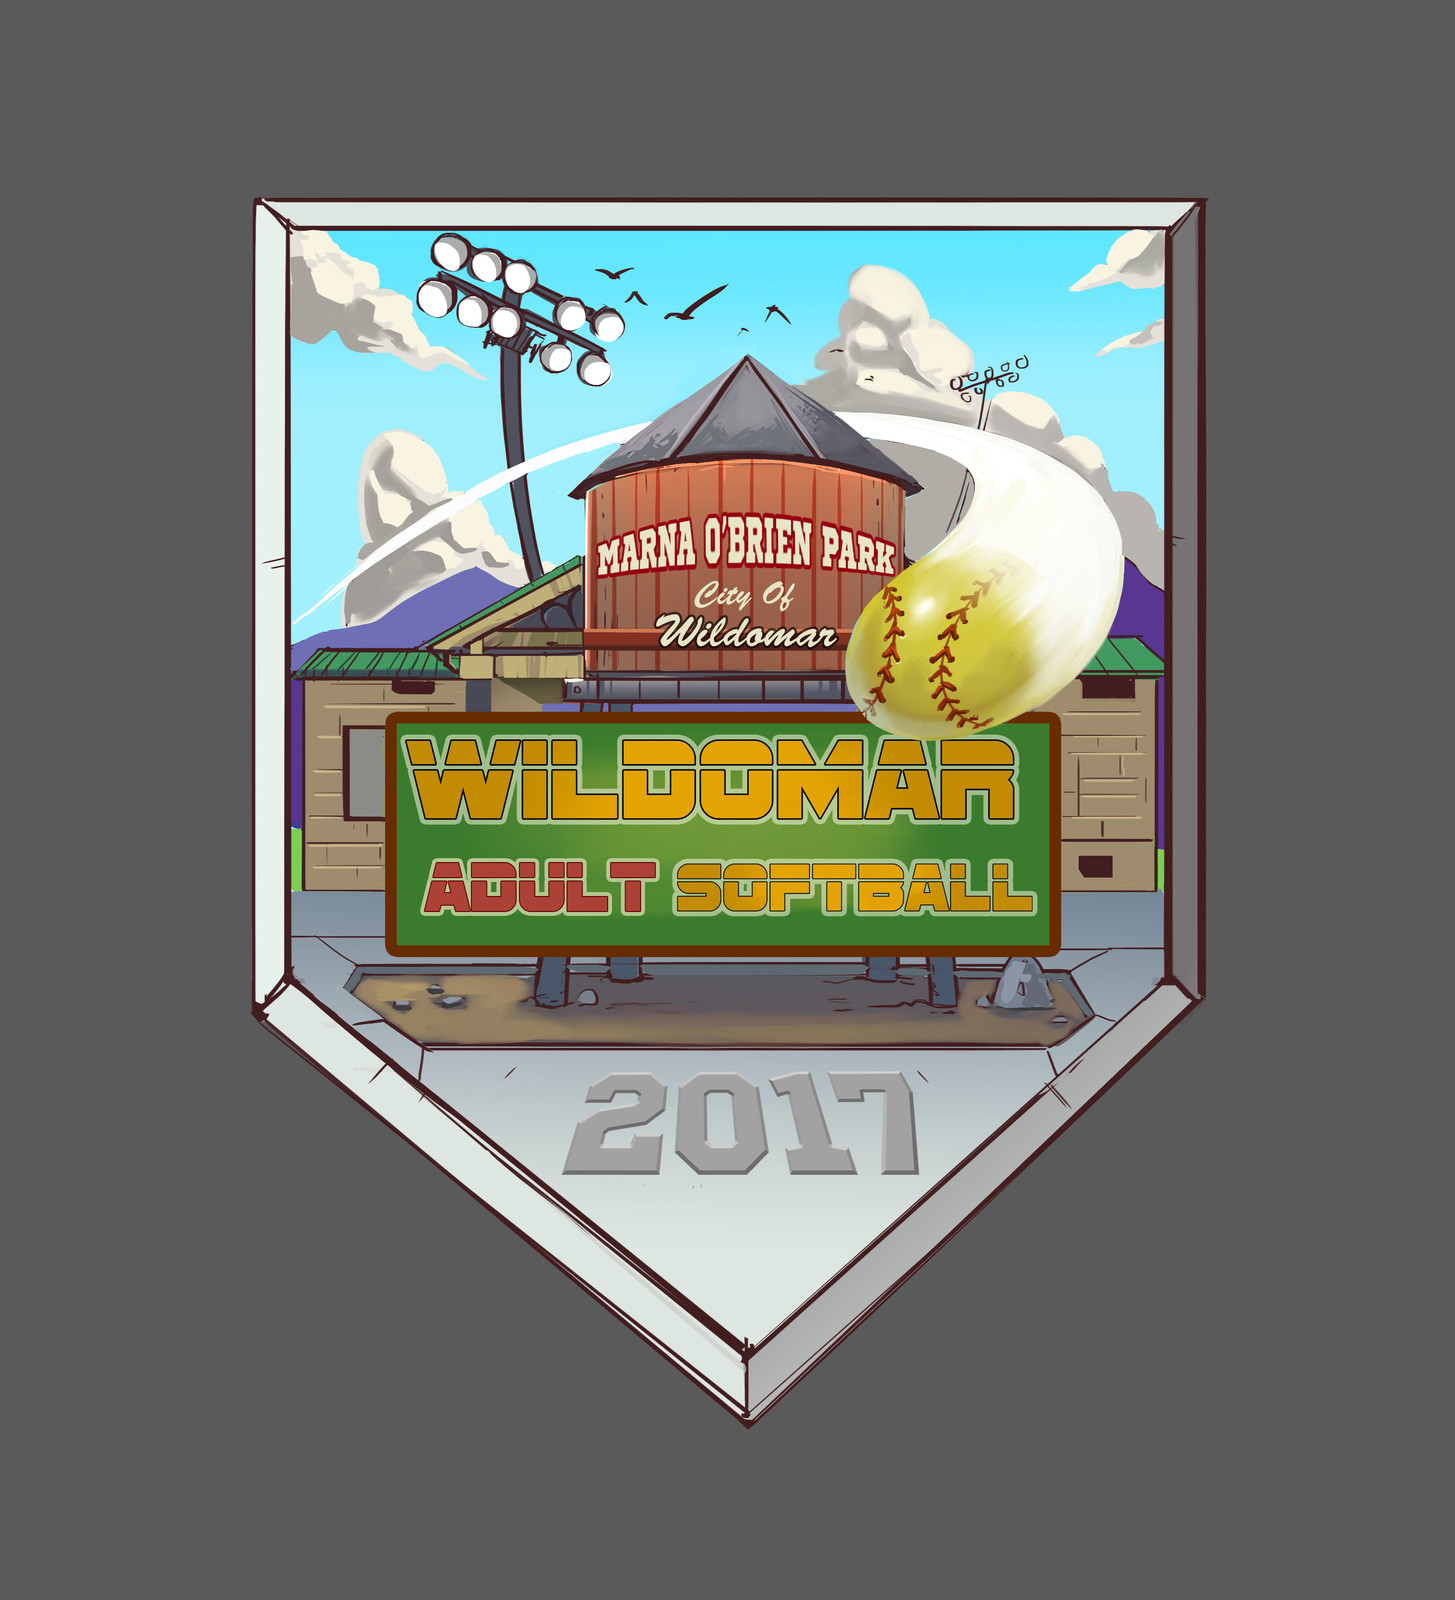 wildomar adult softball logo